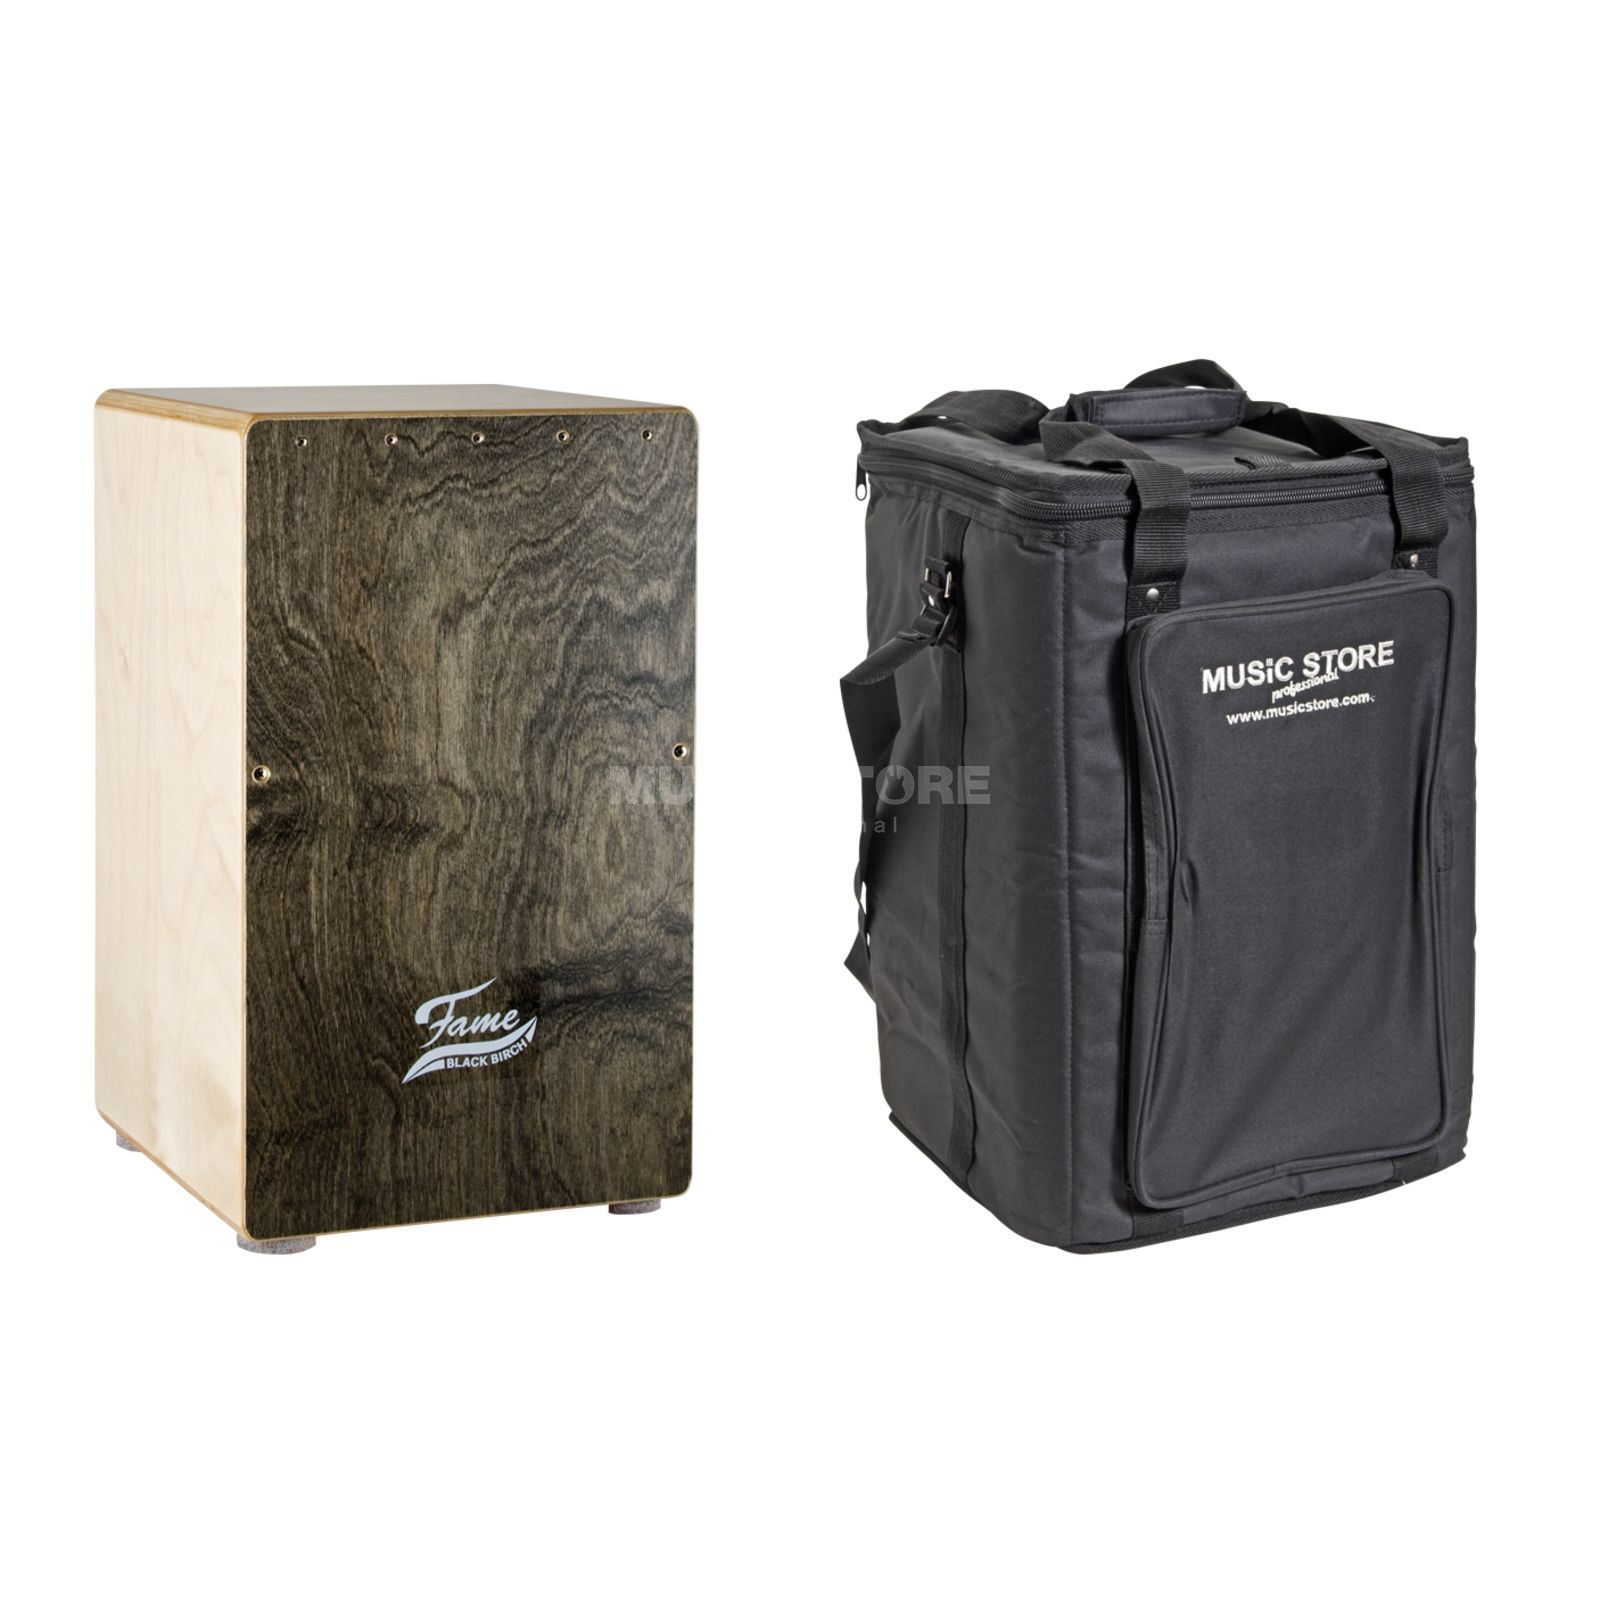 SET FAME Black Birch Cajon inkl. Rucksack Bag Produktbild